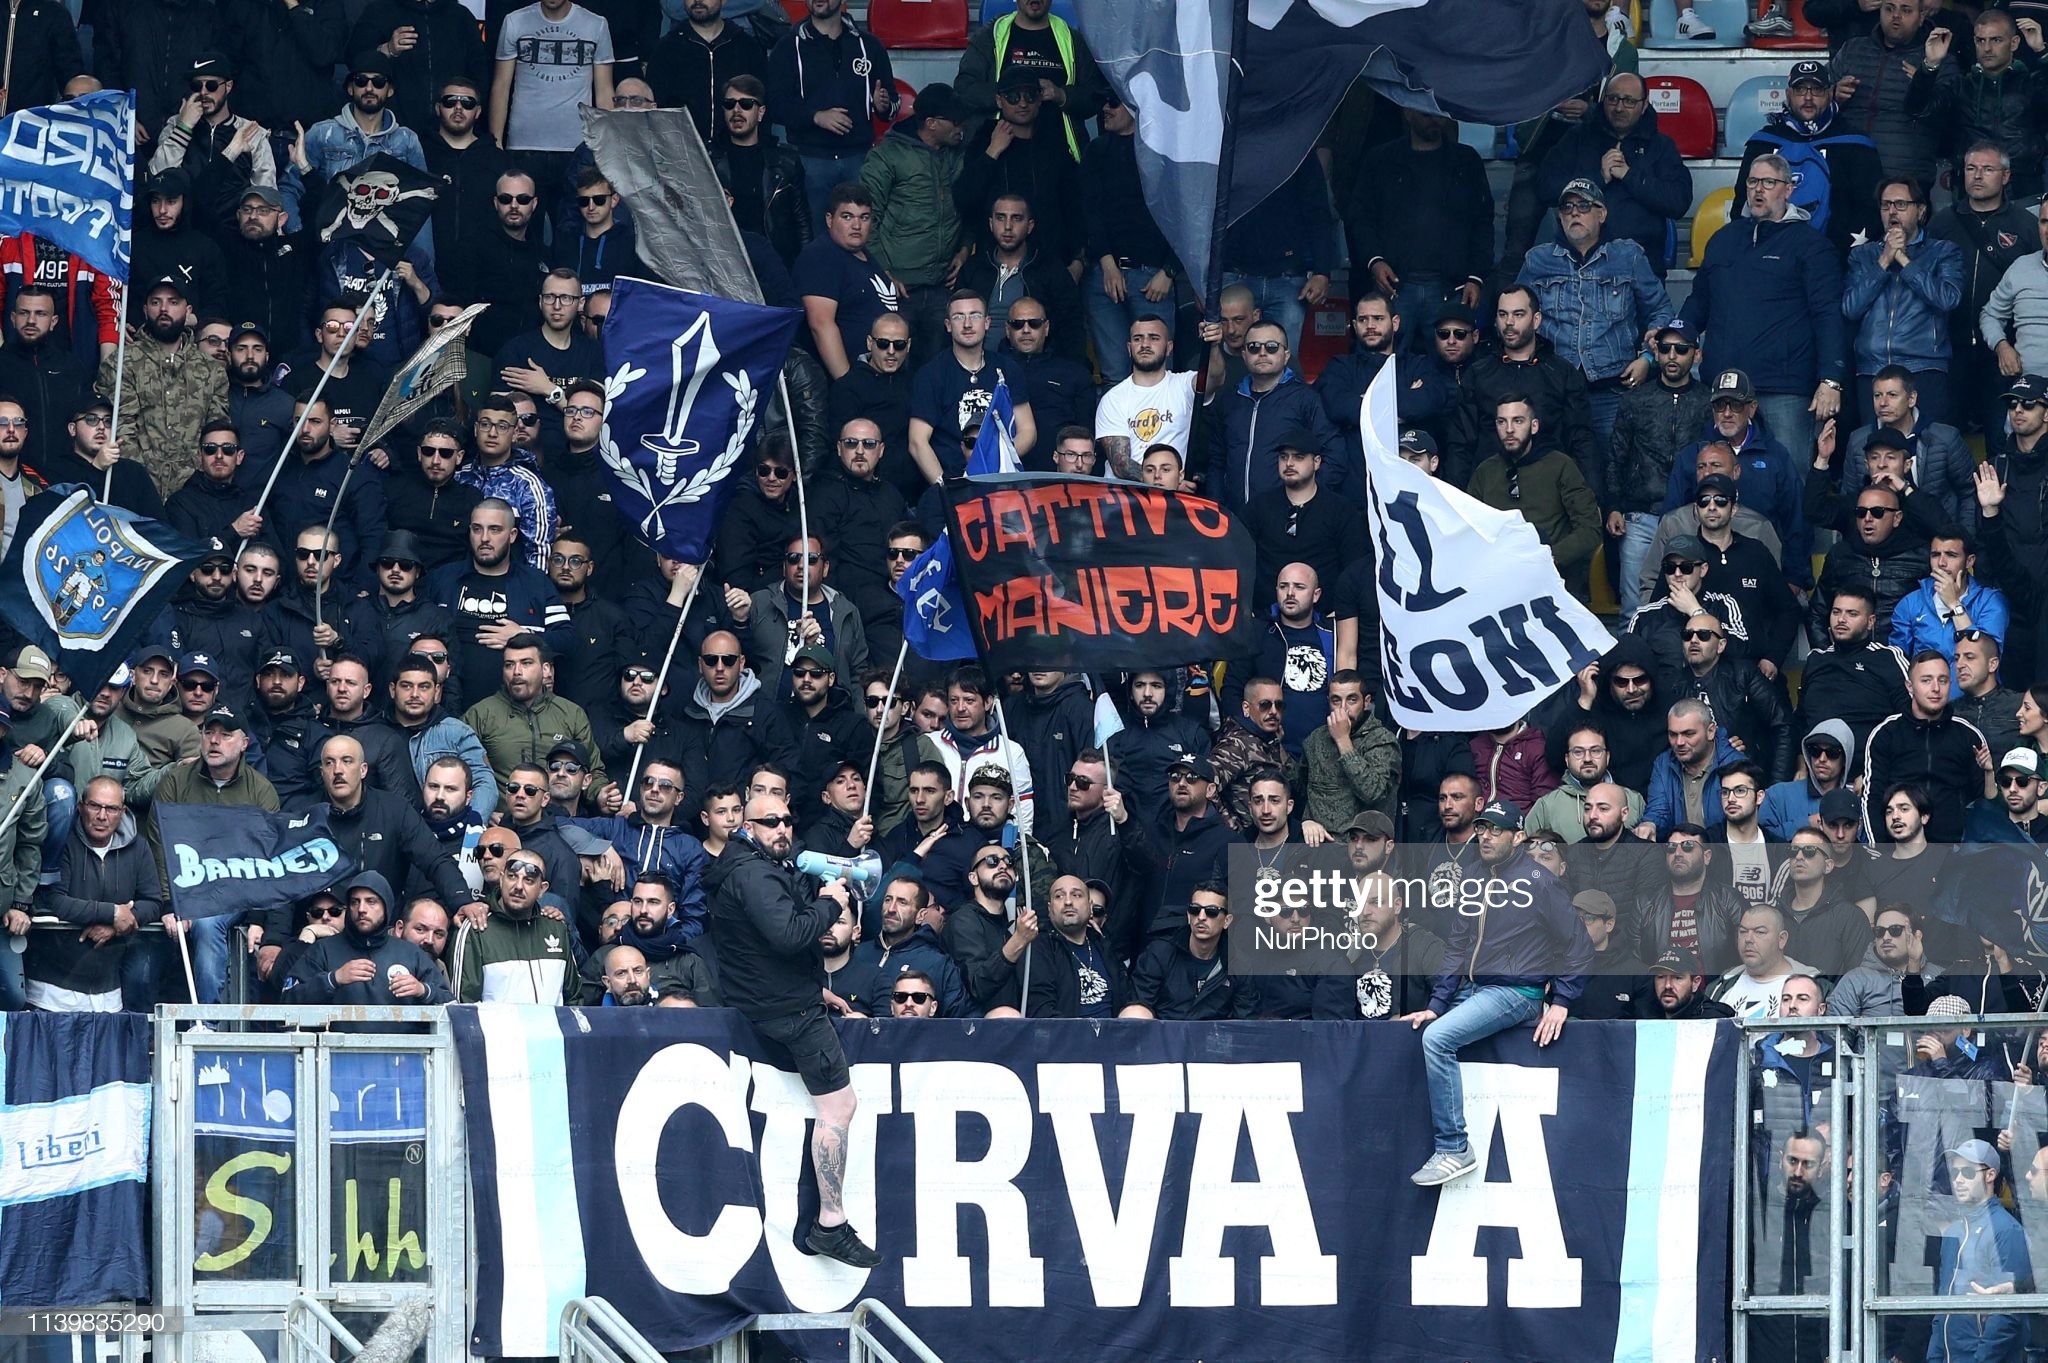 napoli-supporters-during-the-italian-serie-a-football-match-frosinone-picture-id1139835290?s=2048x2048